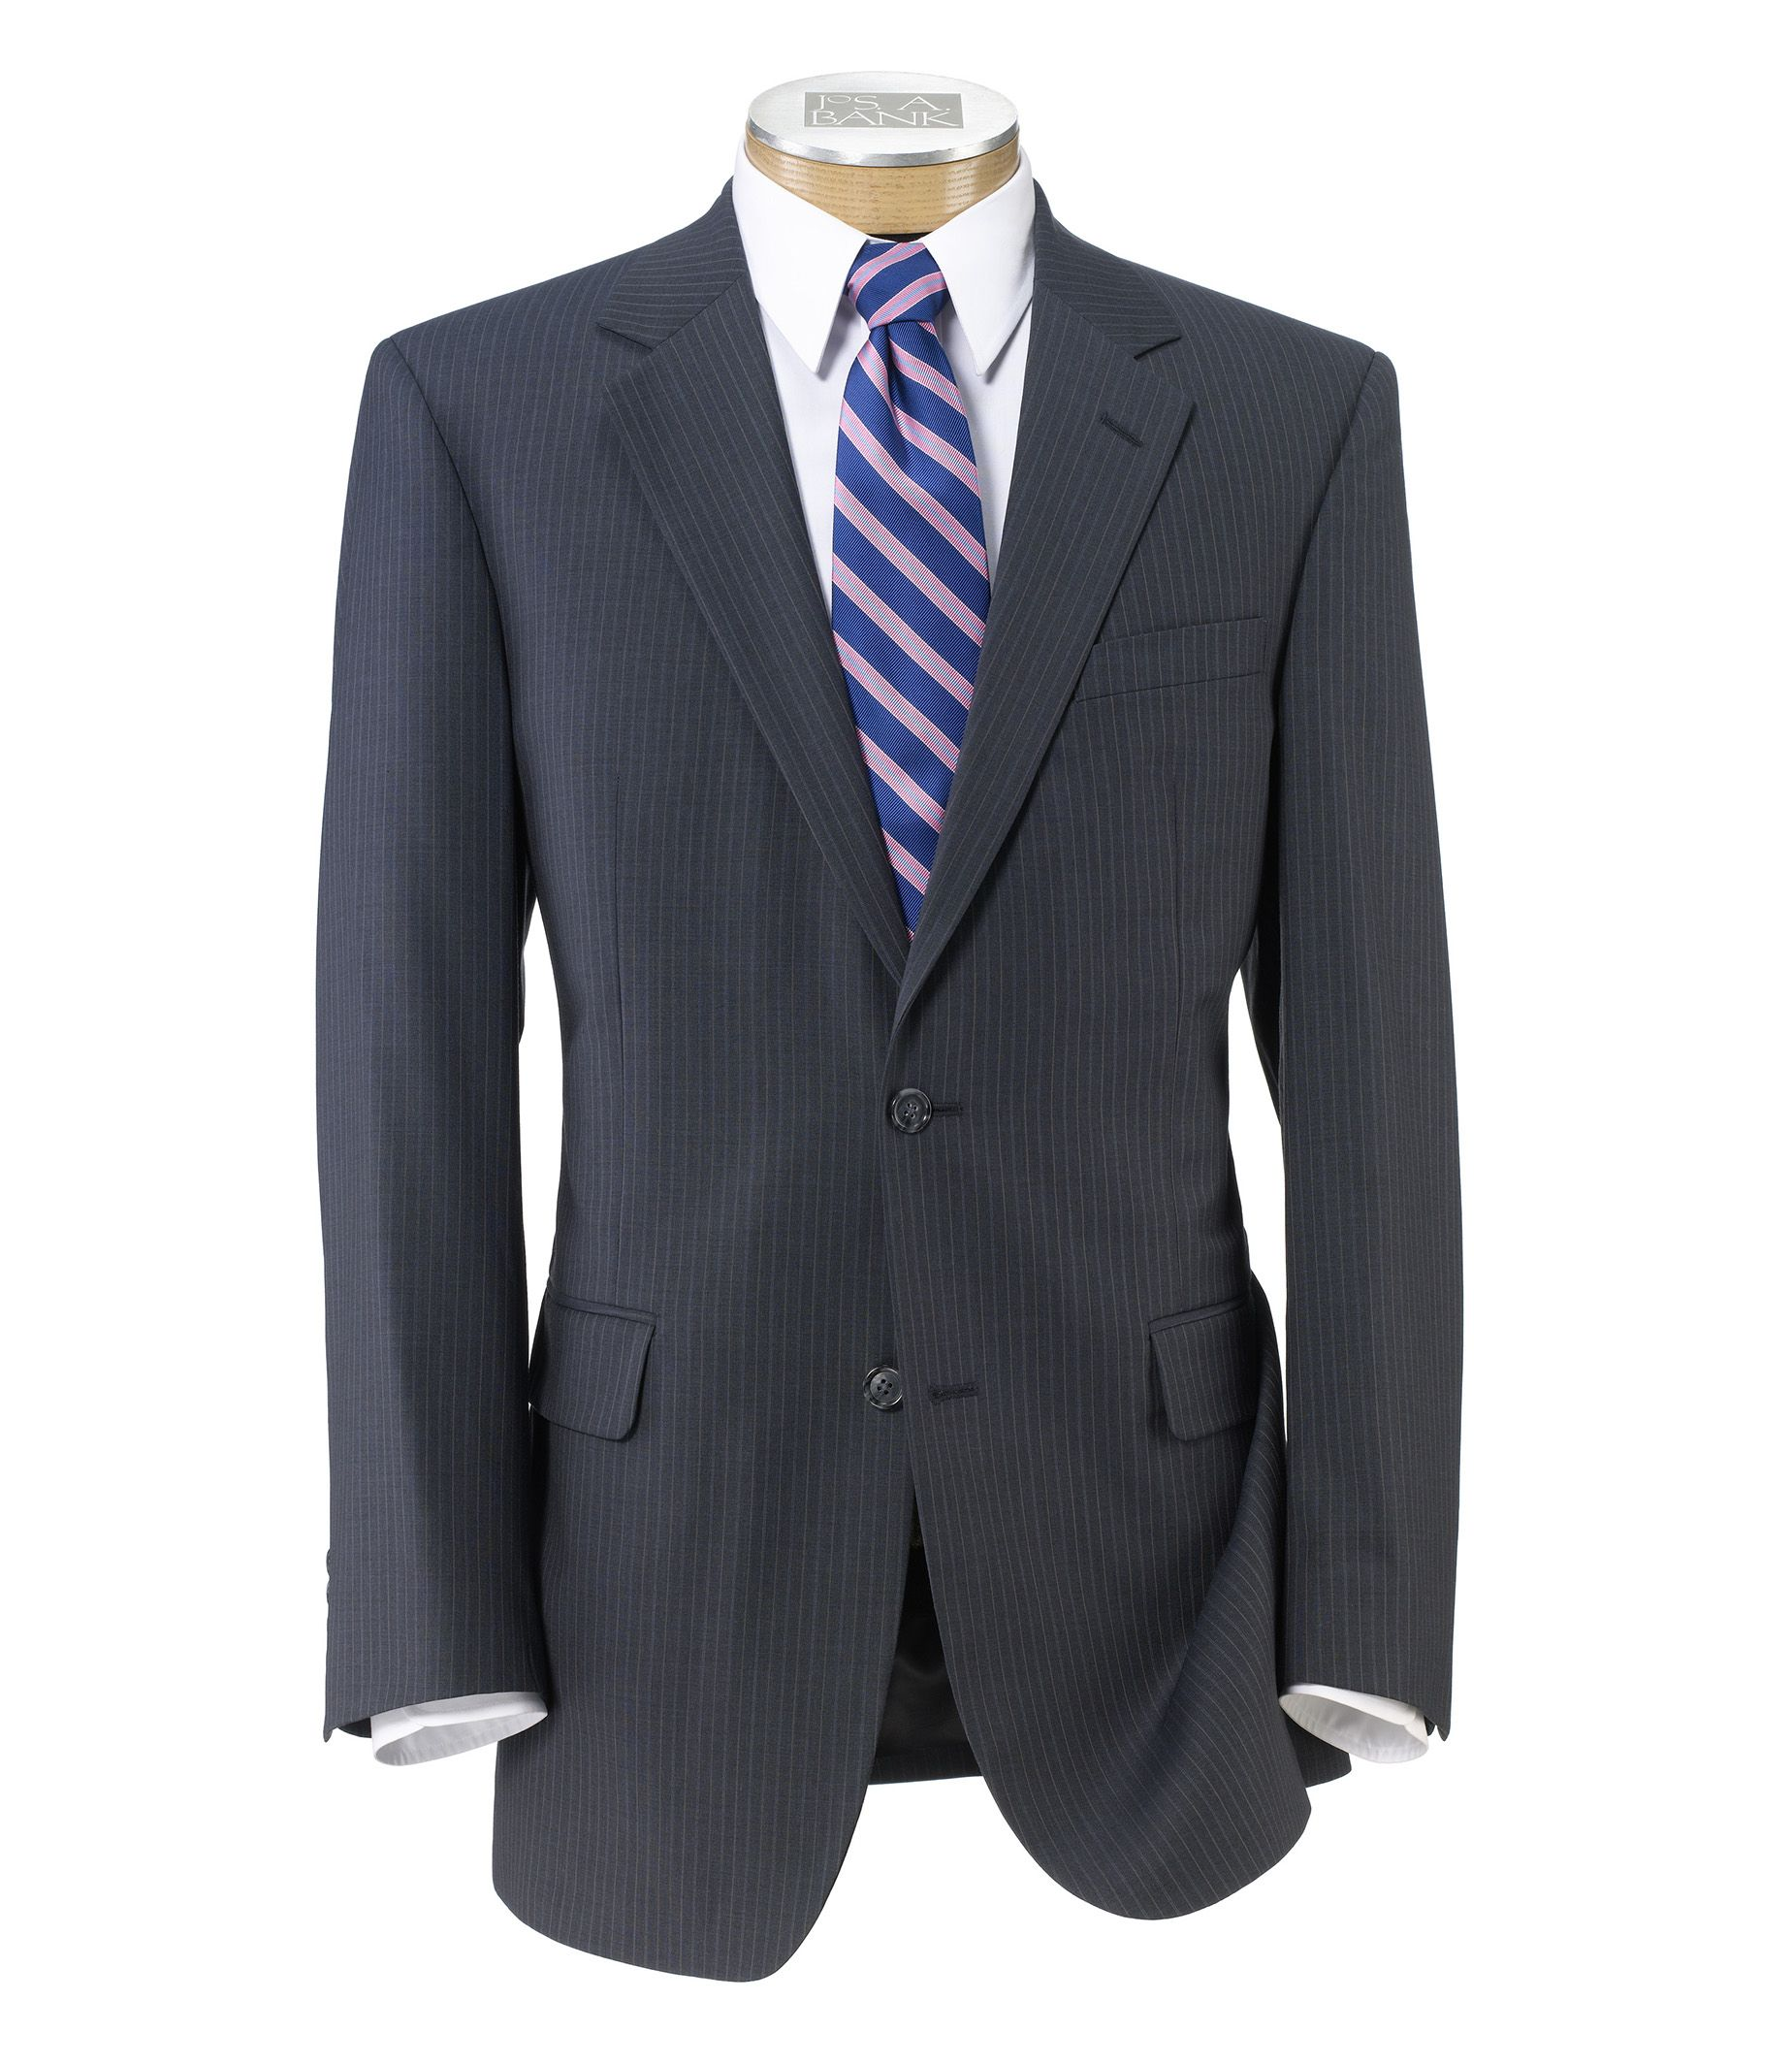 Executive 2-Button Wool Suit with Plain Front Trousers - Blue/Grey w Double Stripe